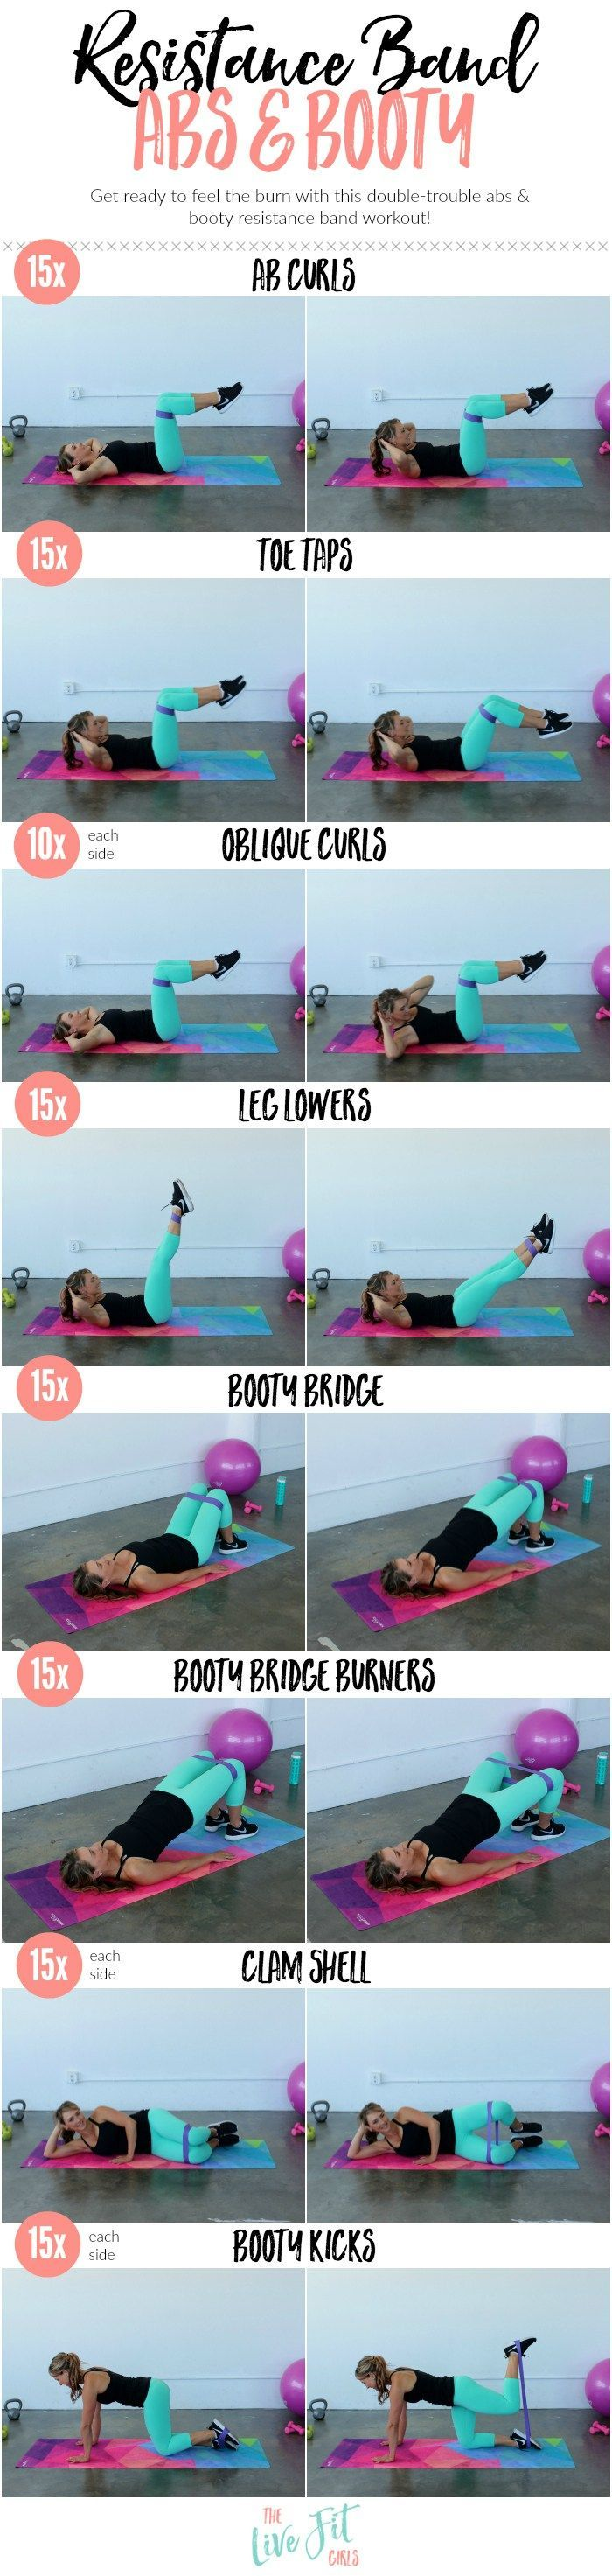 Resistance Band Abs & Booty Workout